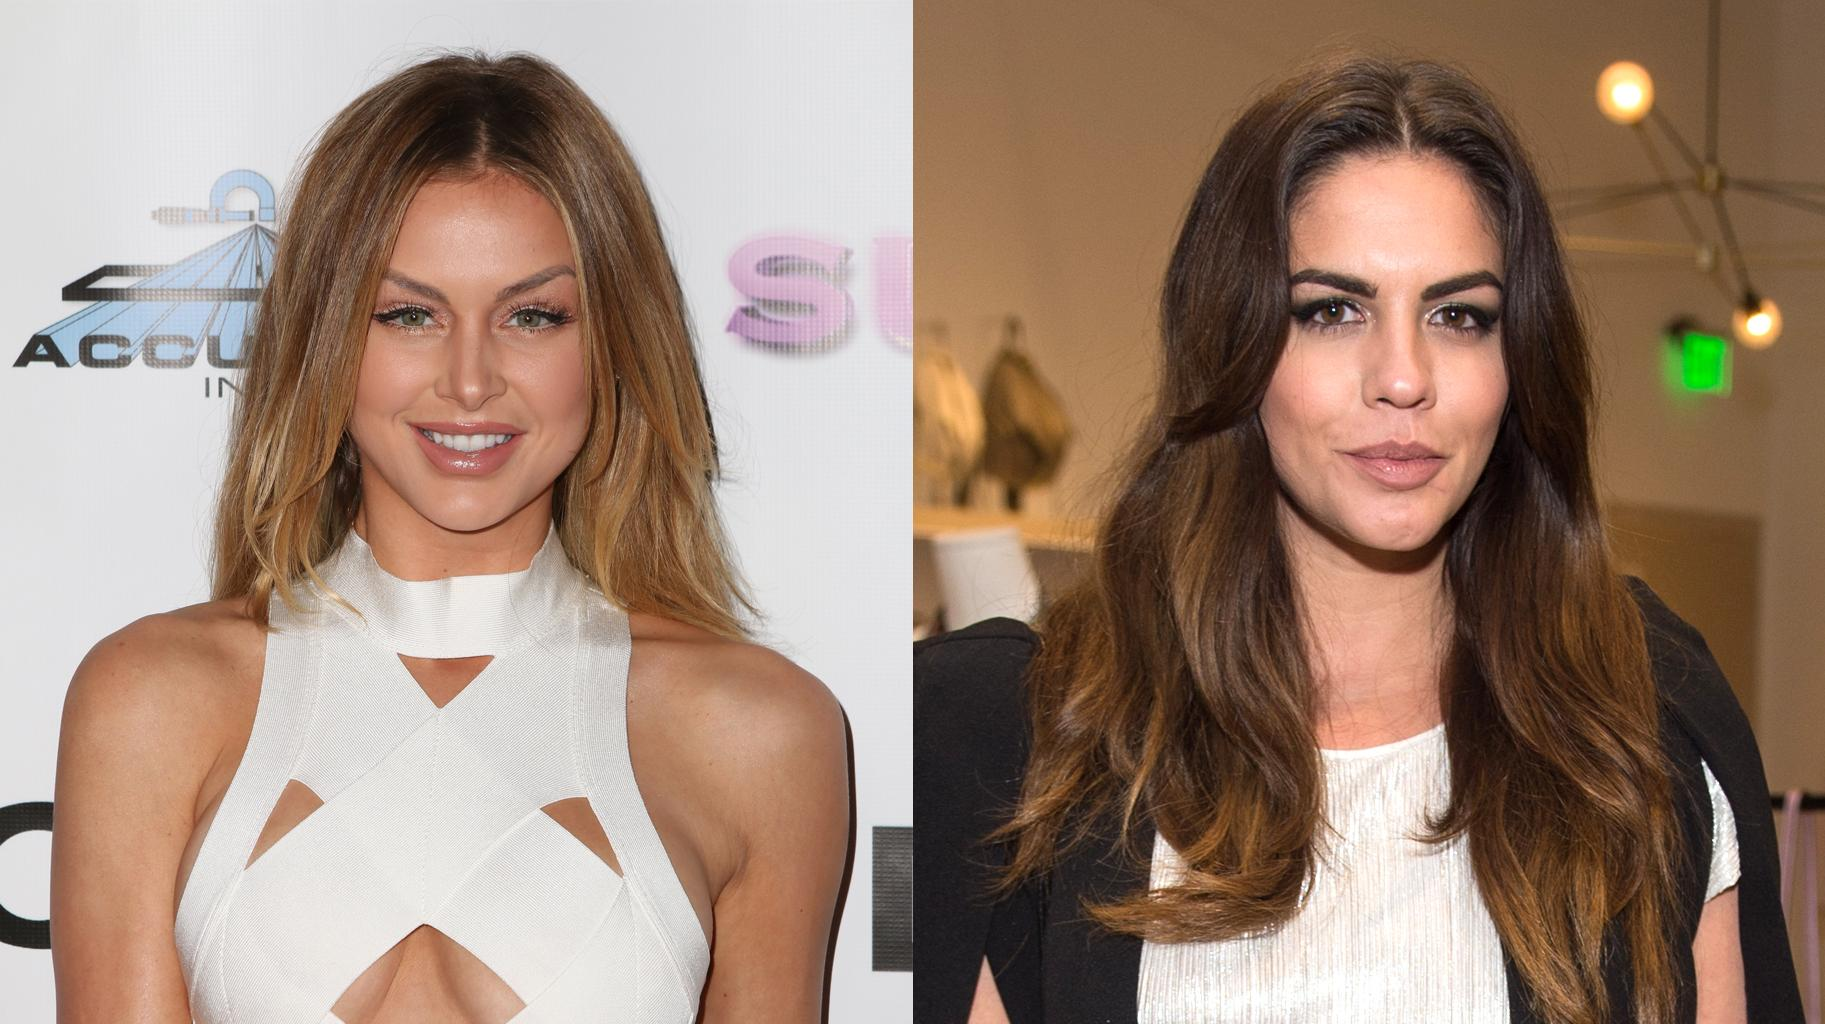 Lala Kent And Katie Maloney Hang With Rumored Cast Of New Real Housewives Franchise